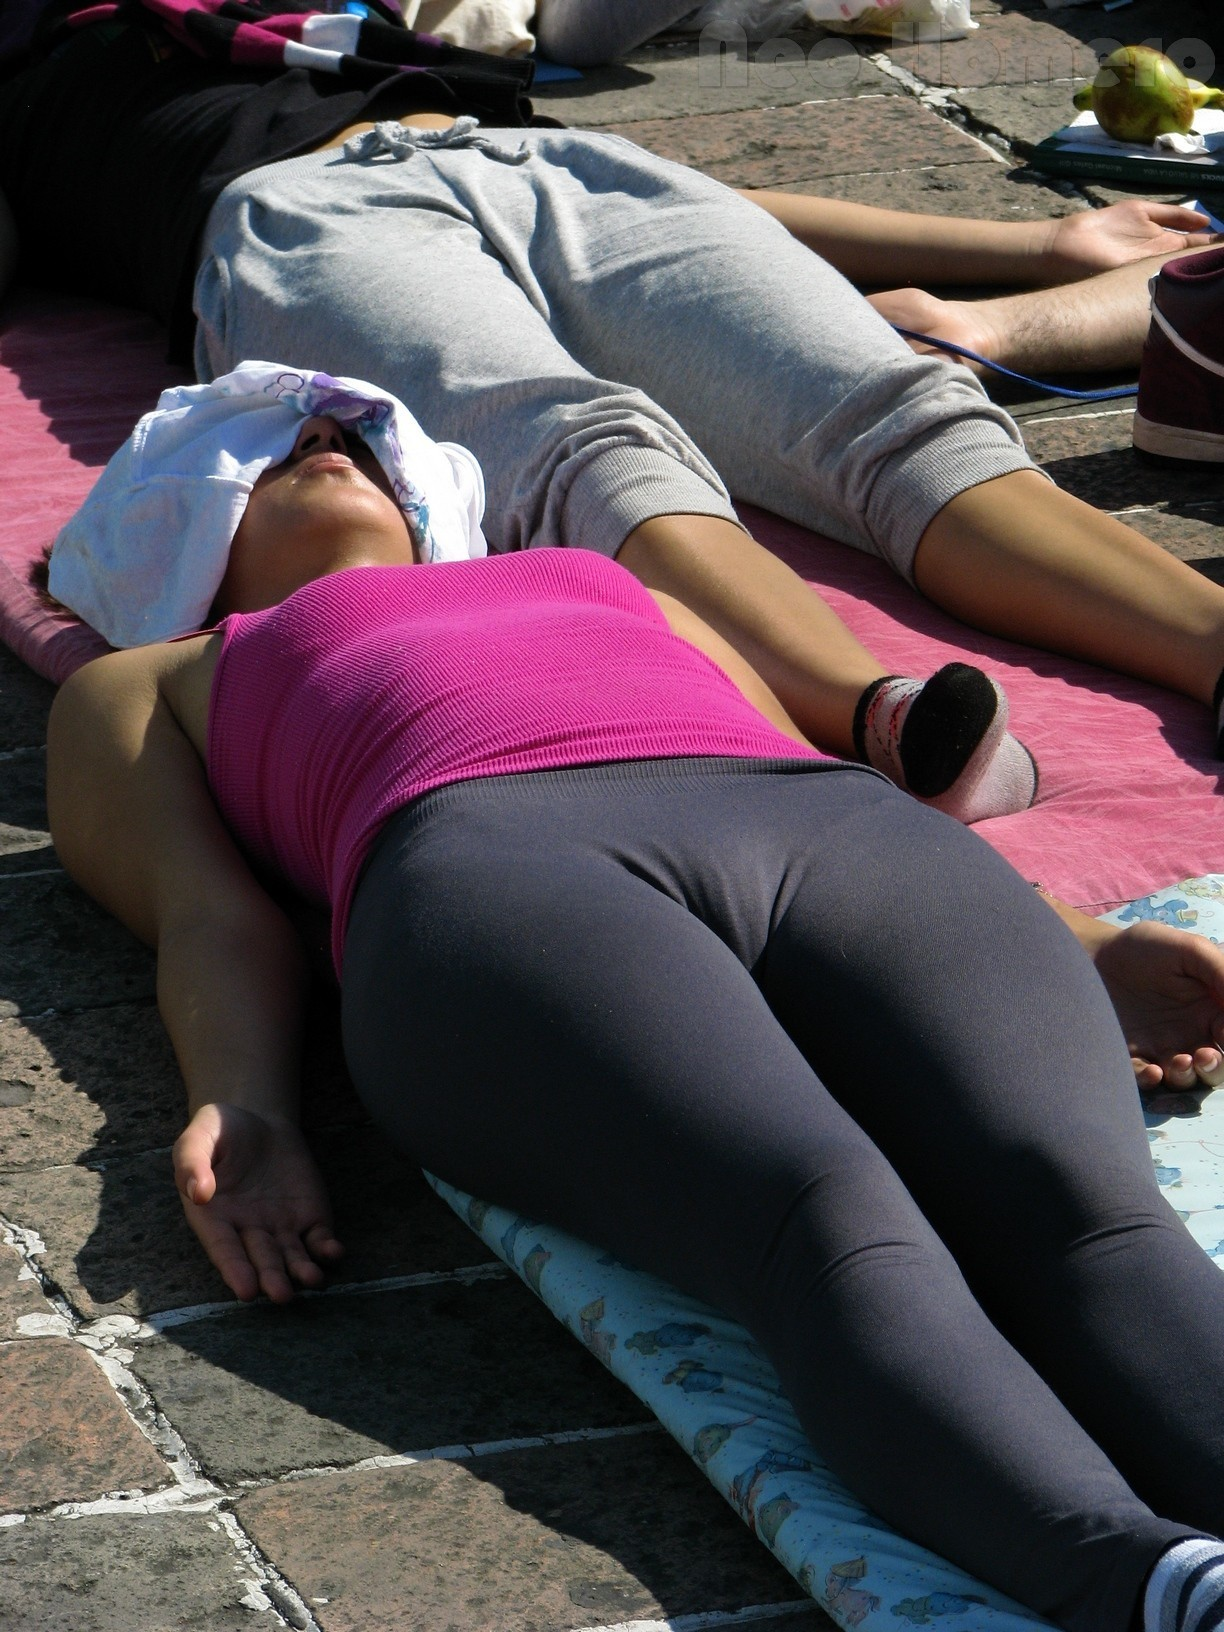 Famous apple store yoga pants ass sexy candid girls